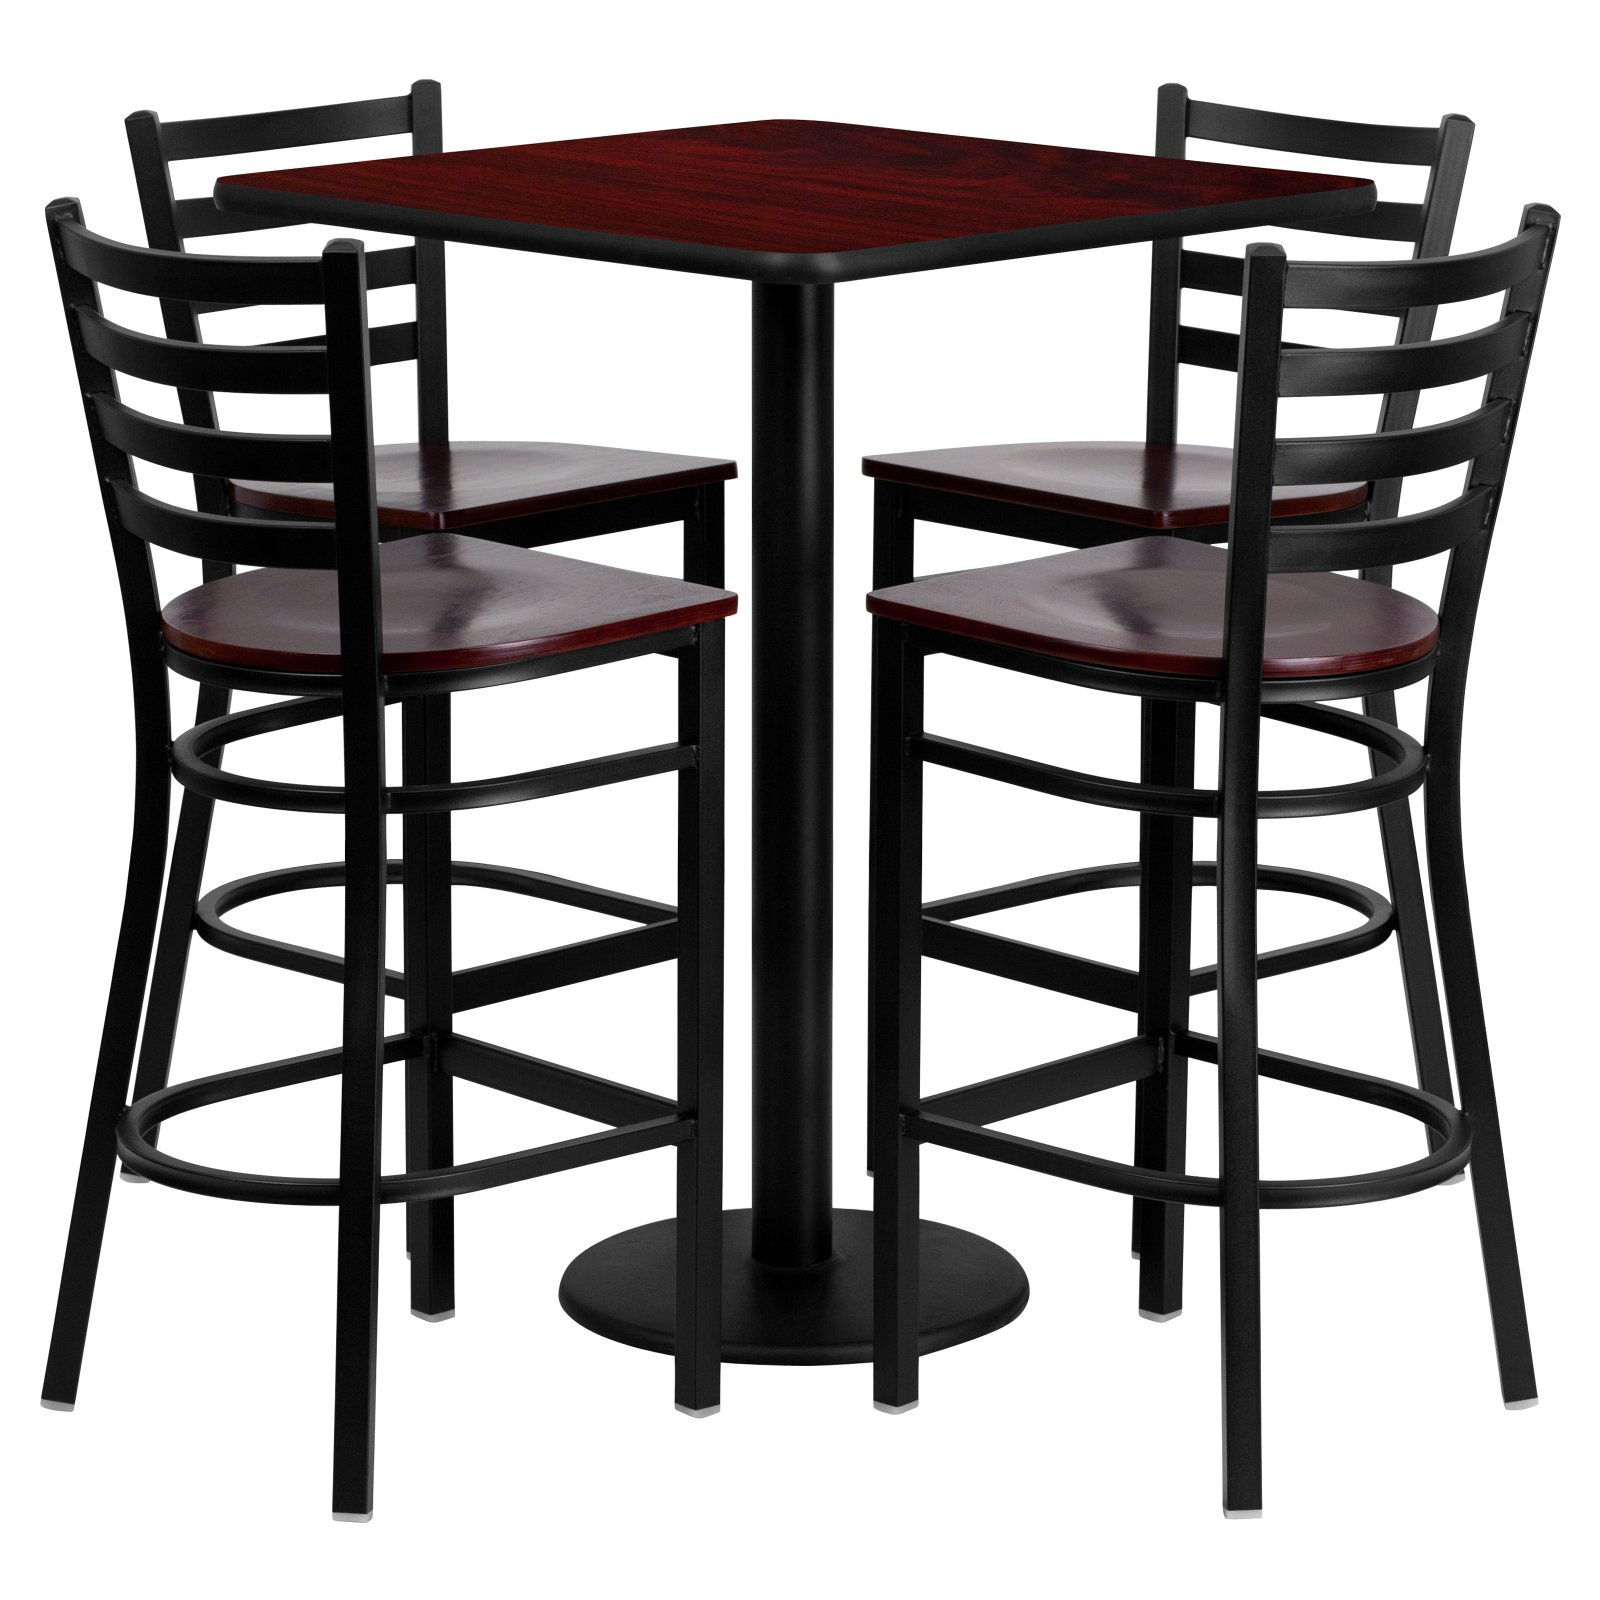 Flash Furniture 30'' Square Mahogany Laminate Table Set with 4 Ladder Back Metal Barstools, Mahogany Wood Seat